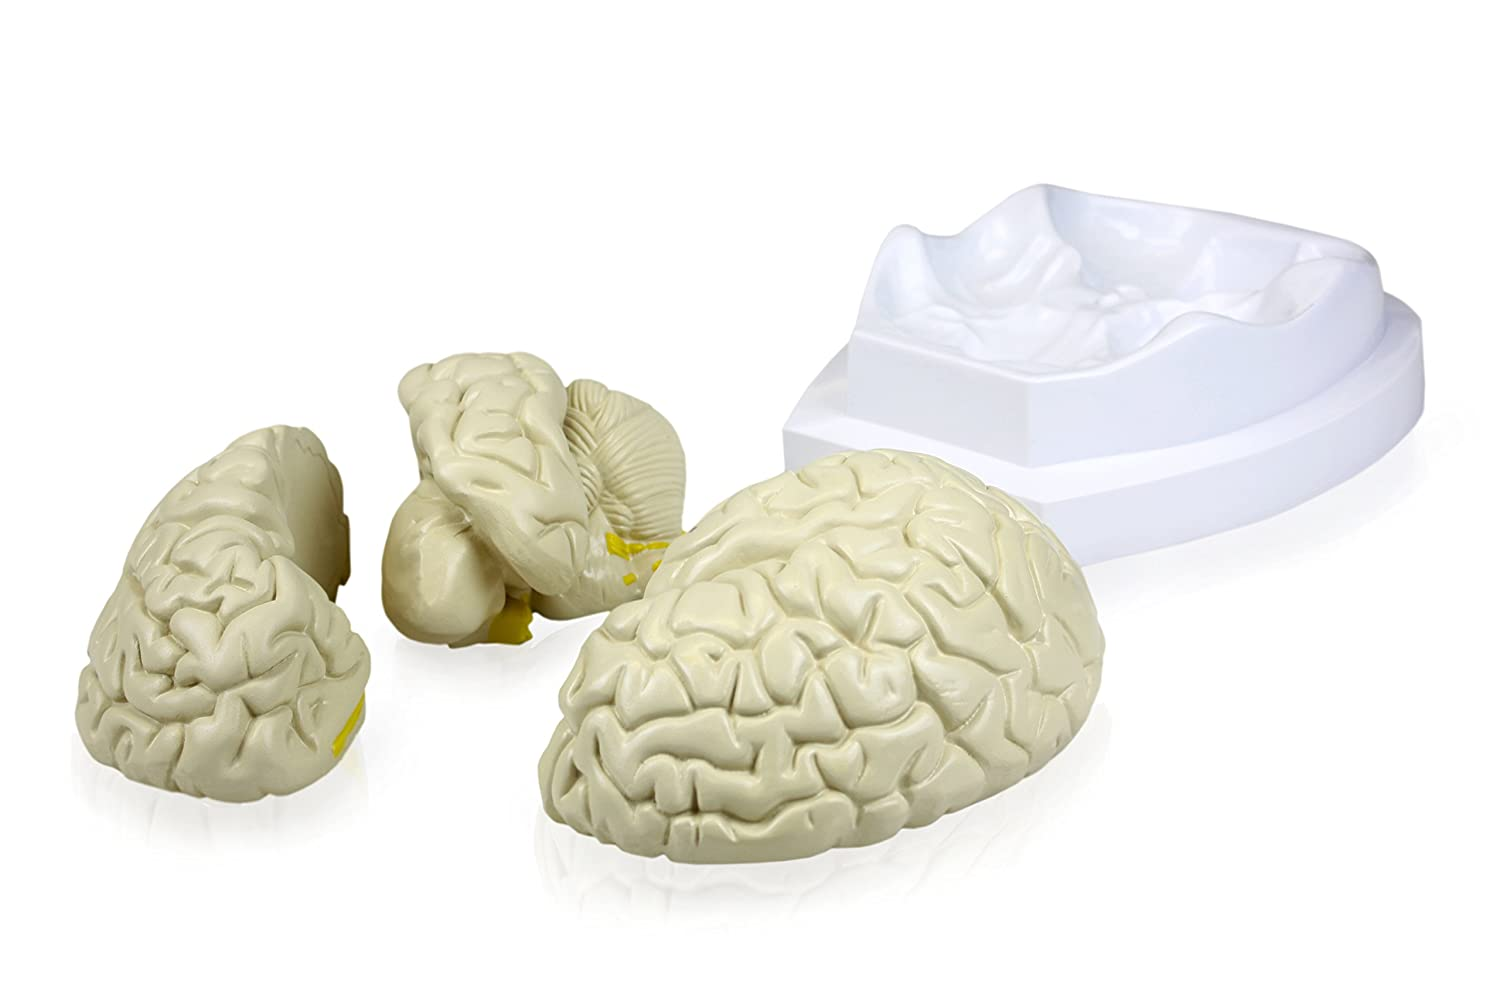 6 x 5 x 7.5 Inches Life Size Walter Products B10401-3 Human Brain Model 3 Parts